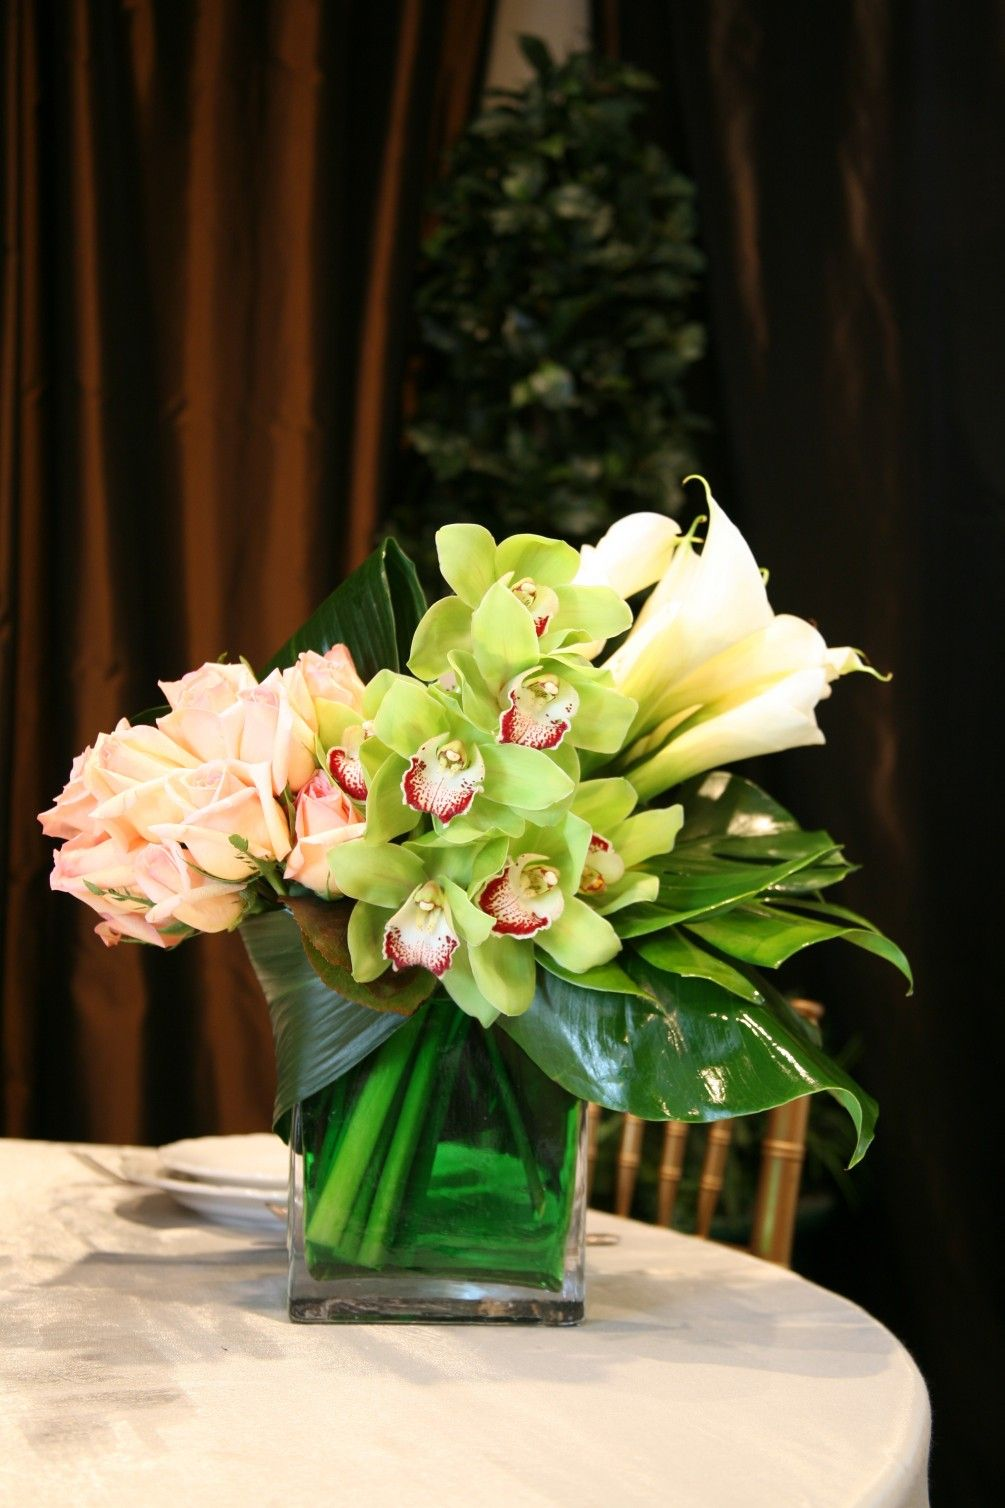 The modern medium height floral arrangement is designed for Contemporary table arrangements